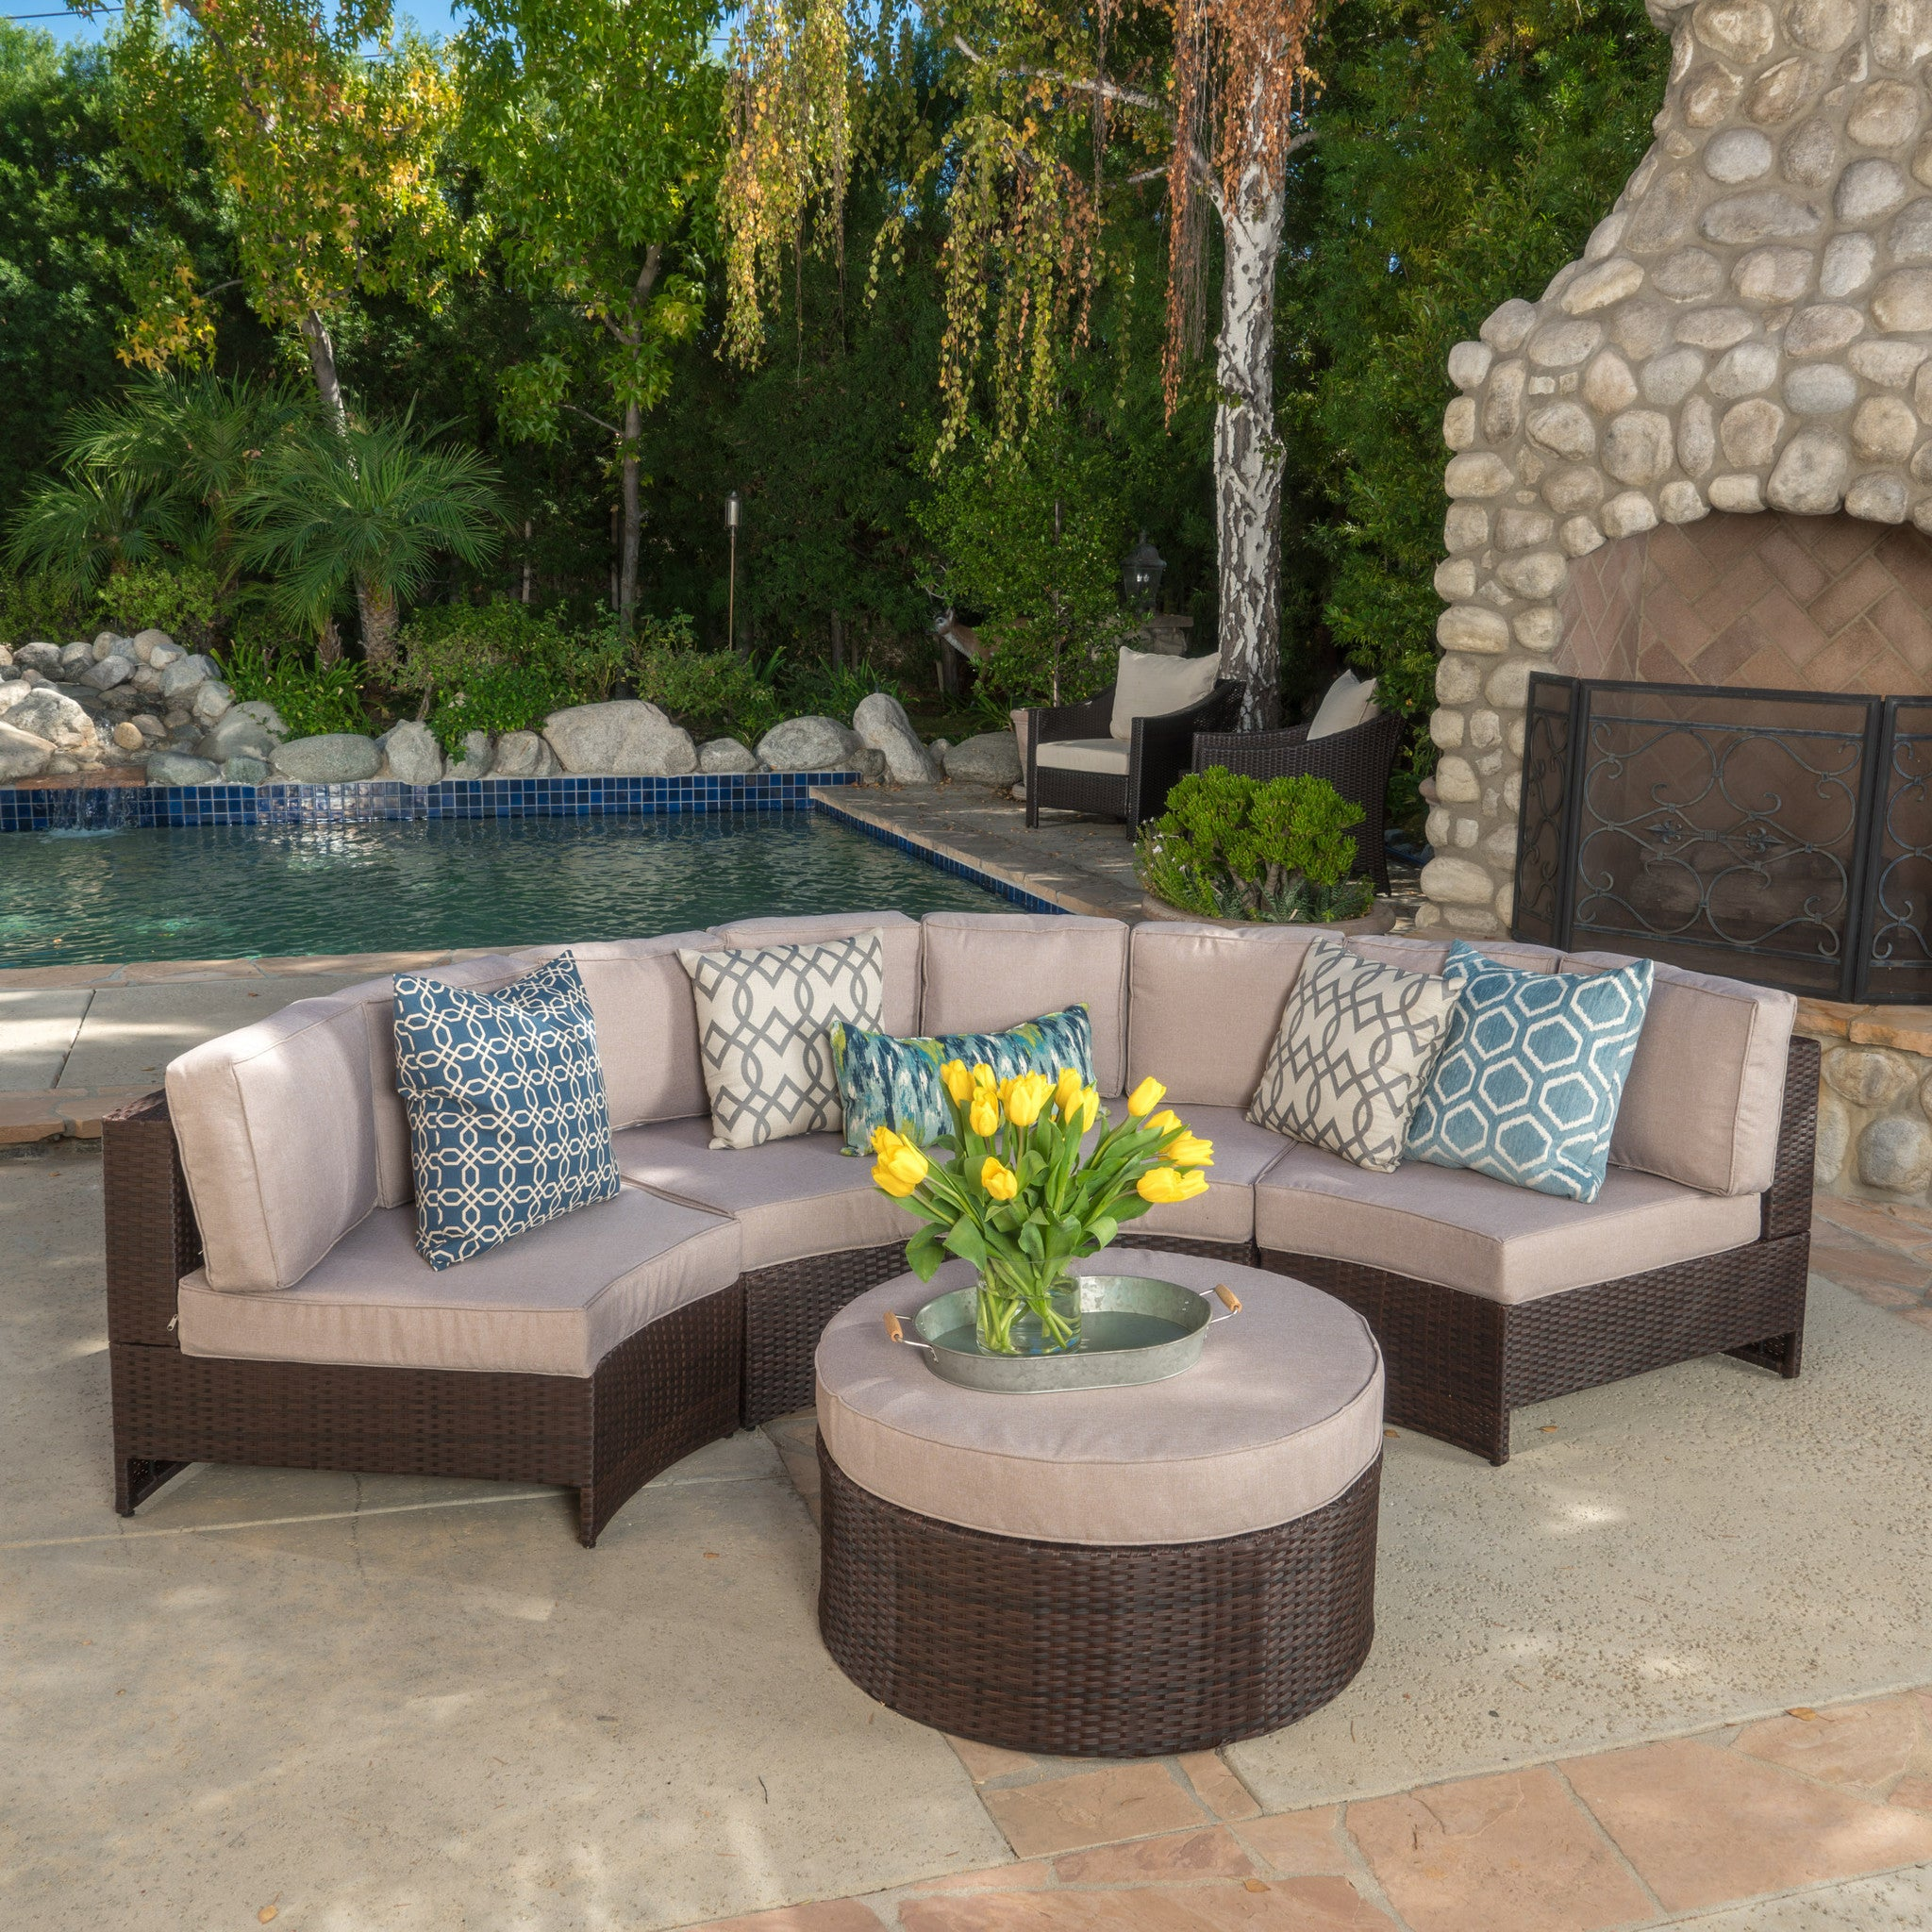 Outdoor Sectional Sofa Set foto